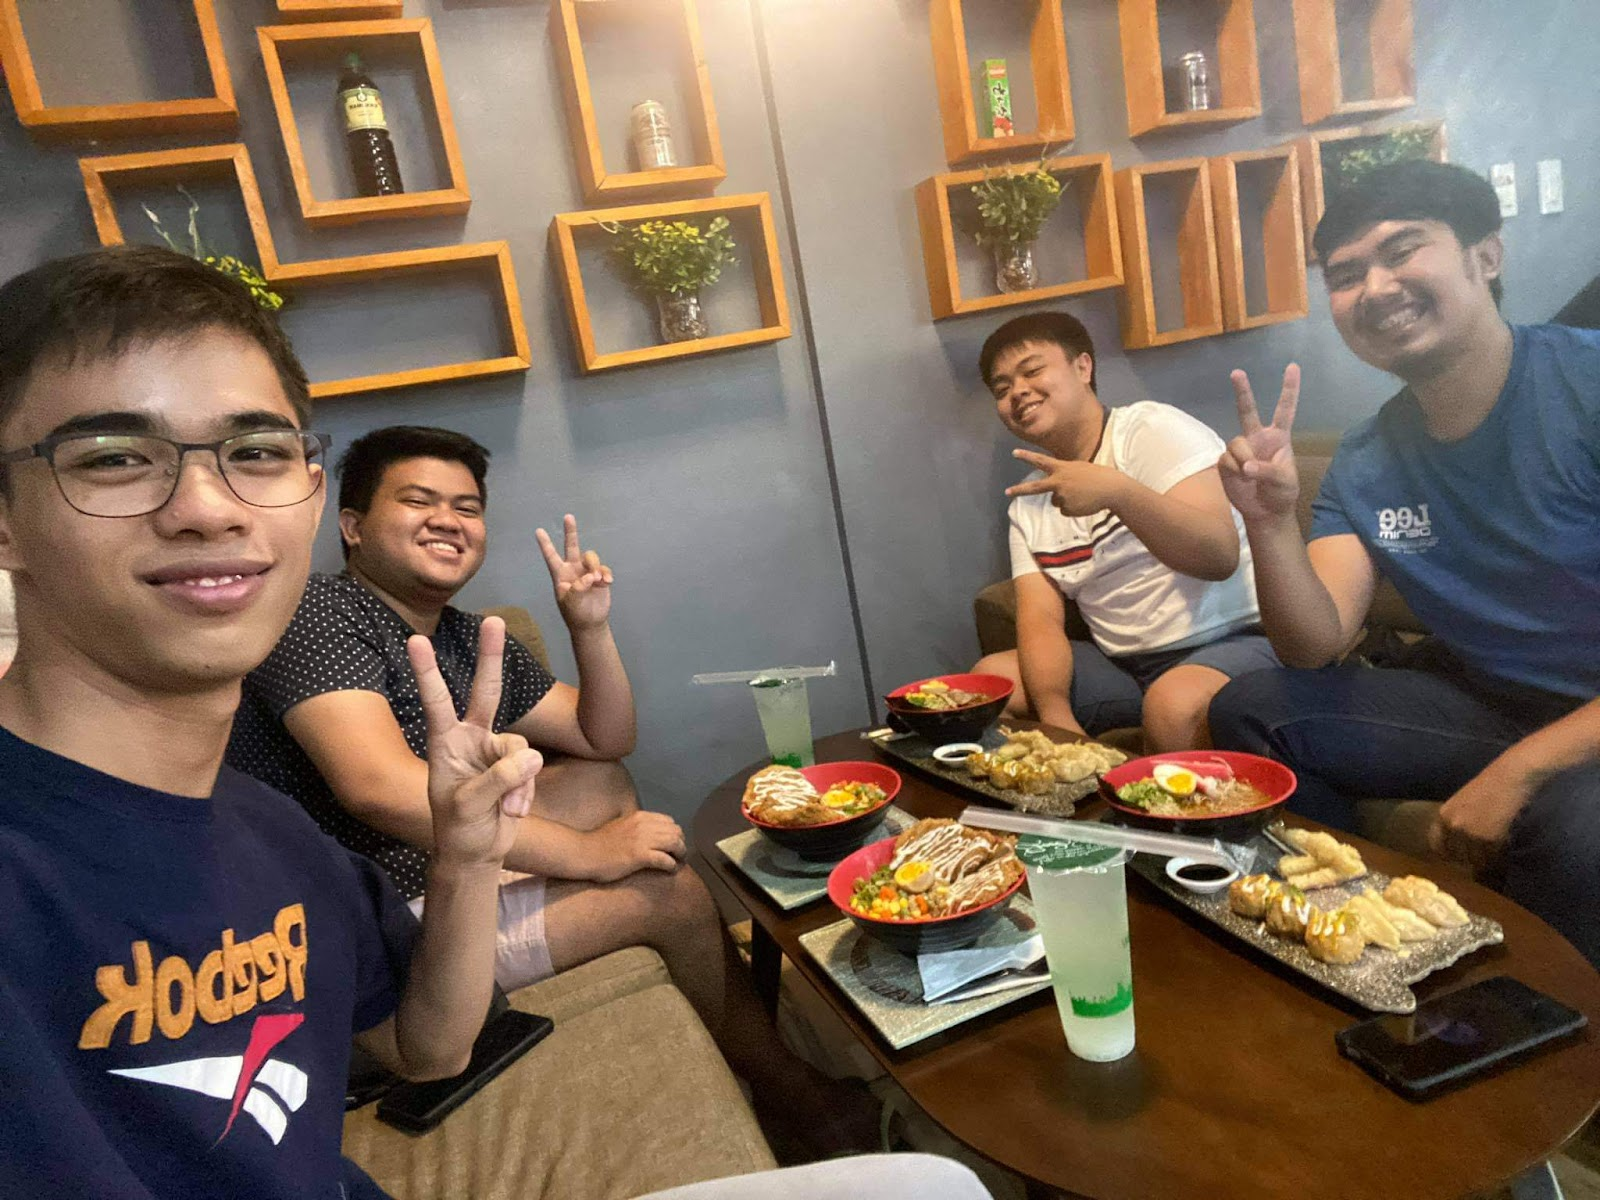 BlackPool Scholars Nagata, Secret, Joel and Xyzev, enjoying a meal together after cashing out their SLP earnings to fiat